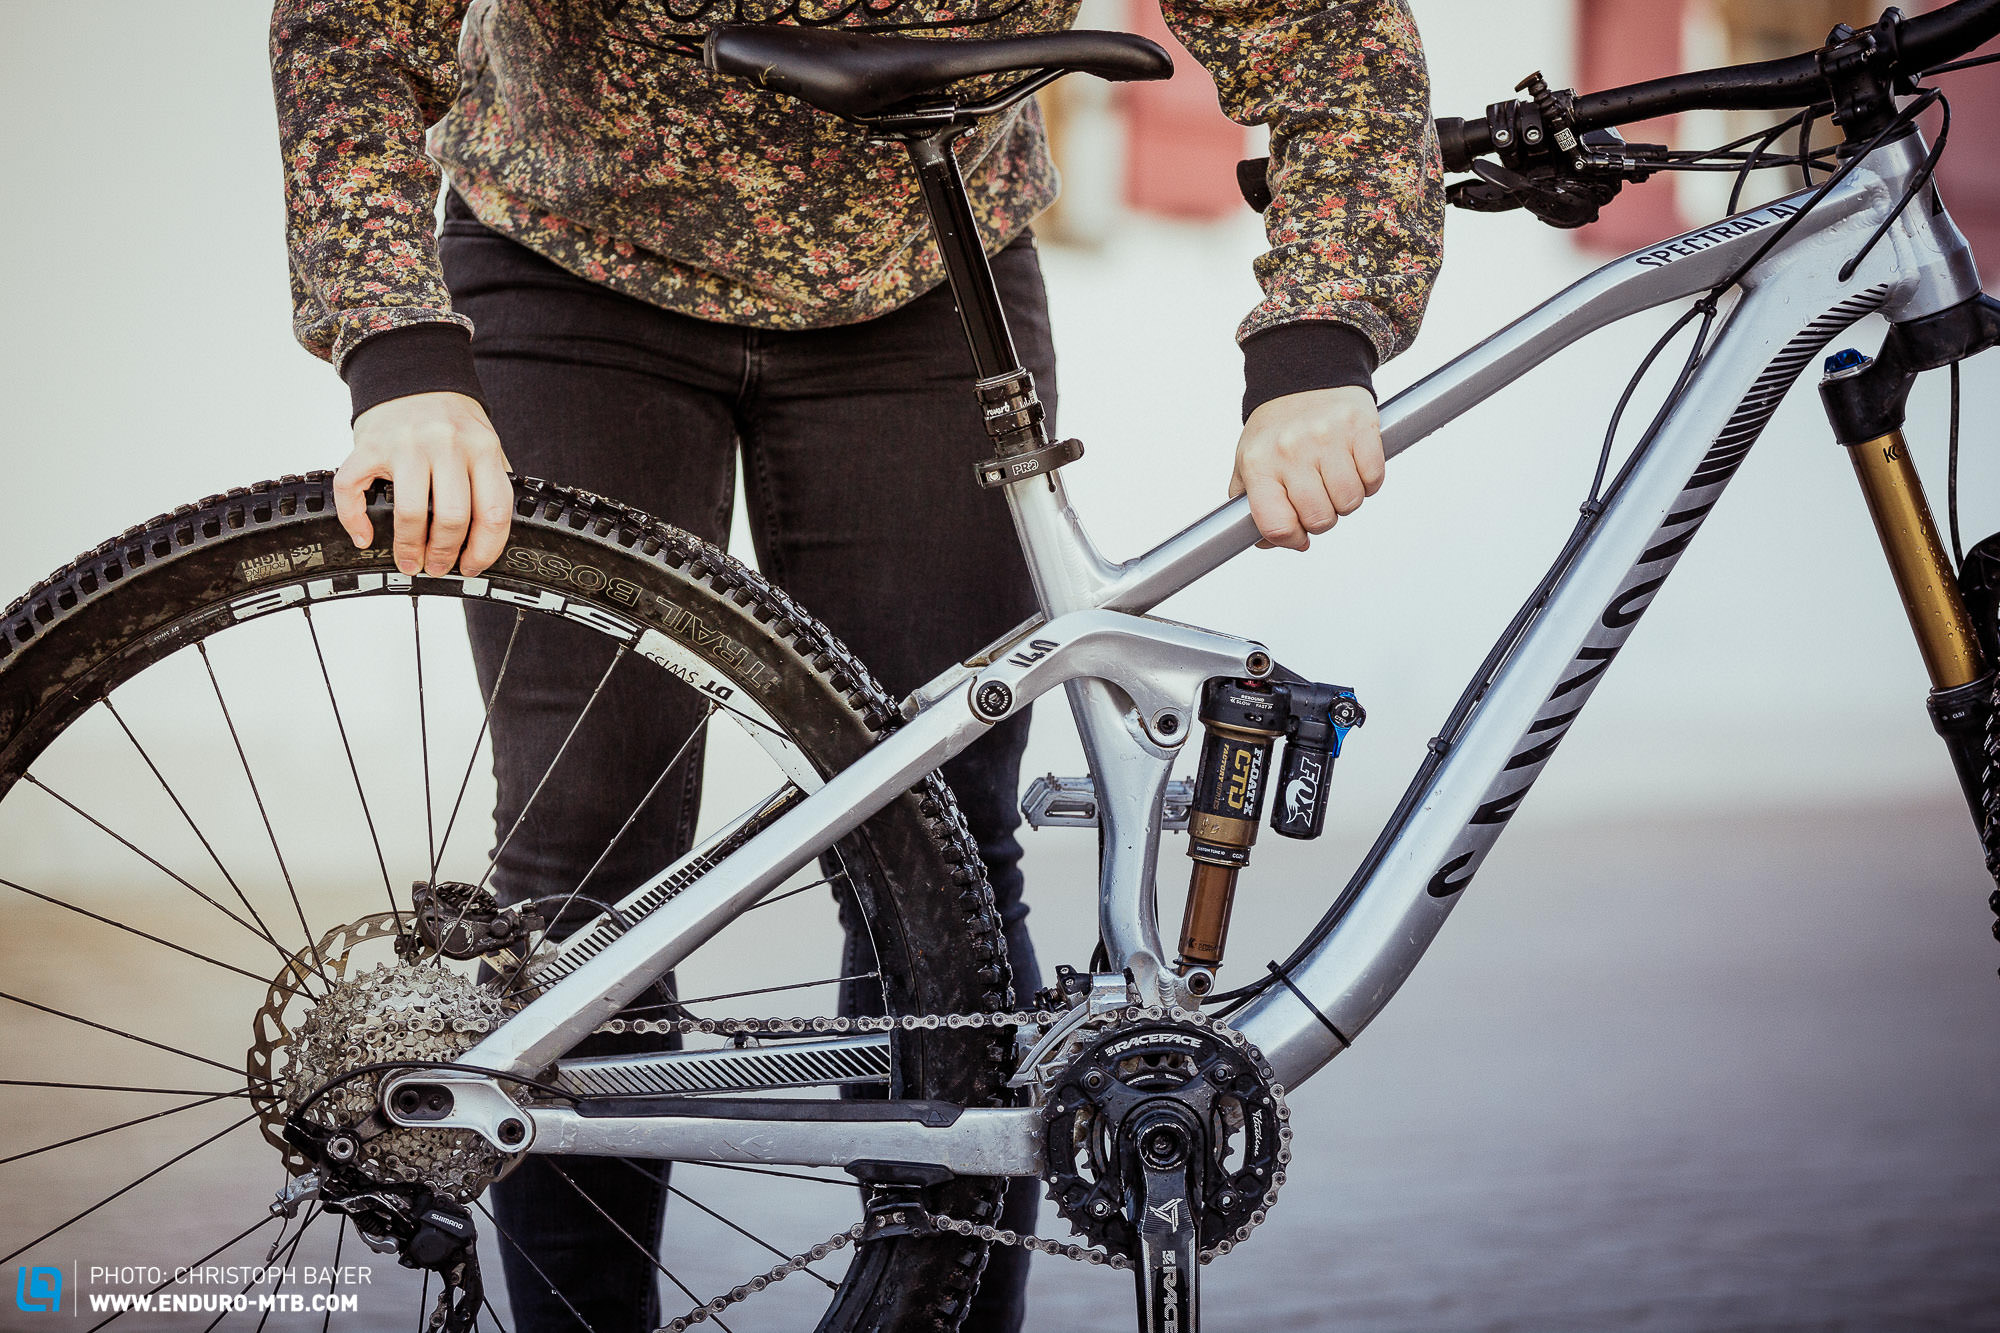 Better look twice – 10 + 1 tips for buying a second-hand bike